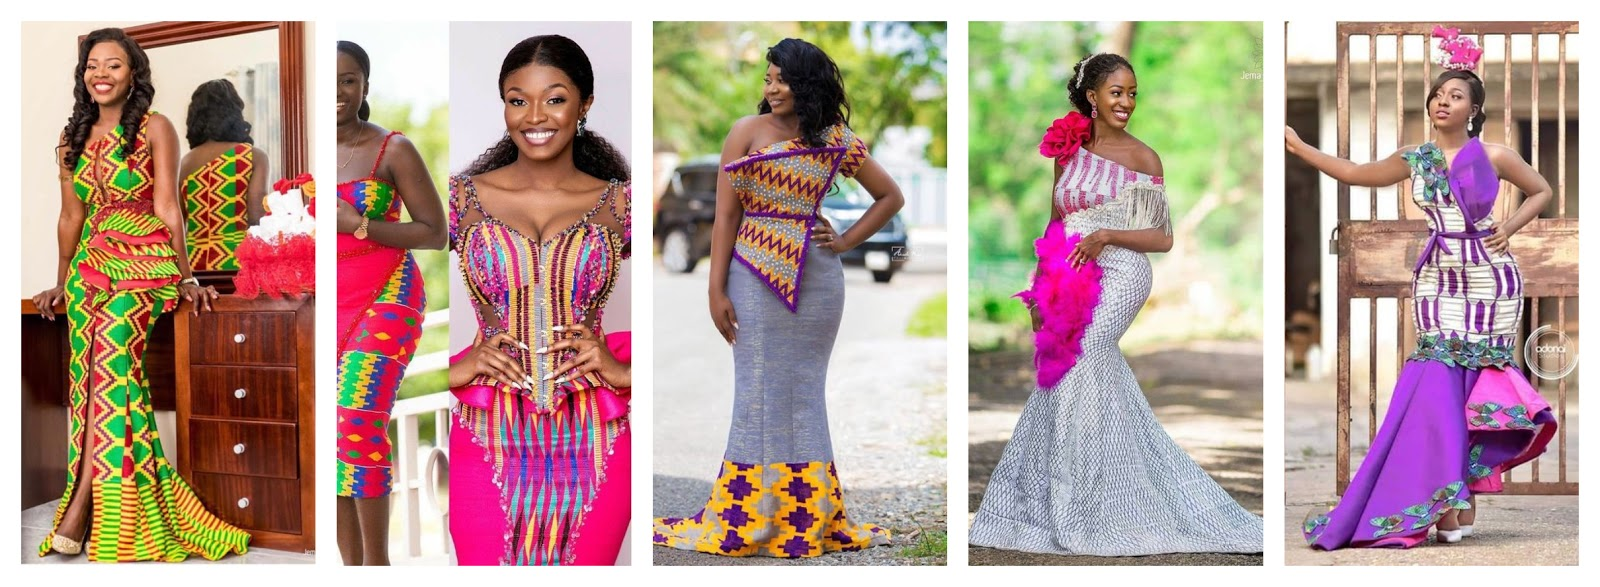 20 Best Ghanaian Kente Styles On The Internet 2019 | Ginna Online ...